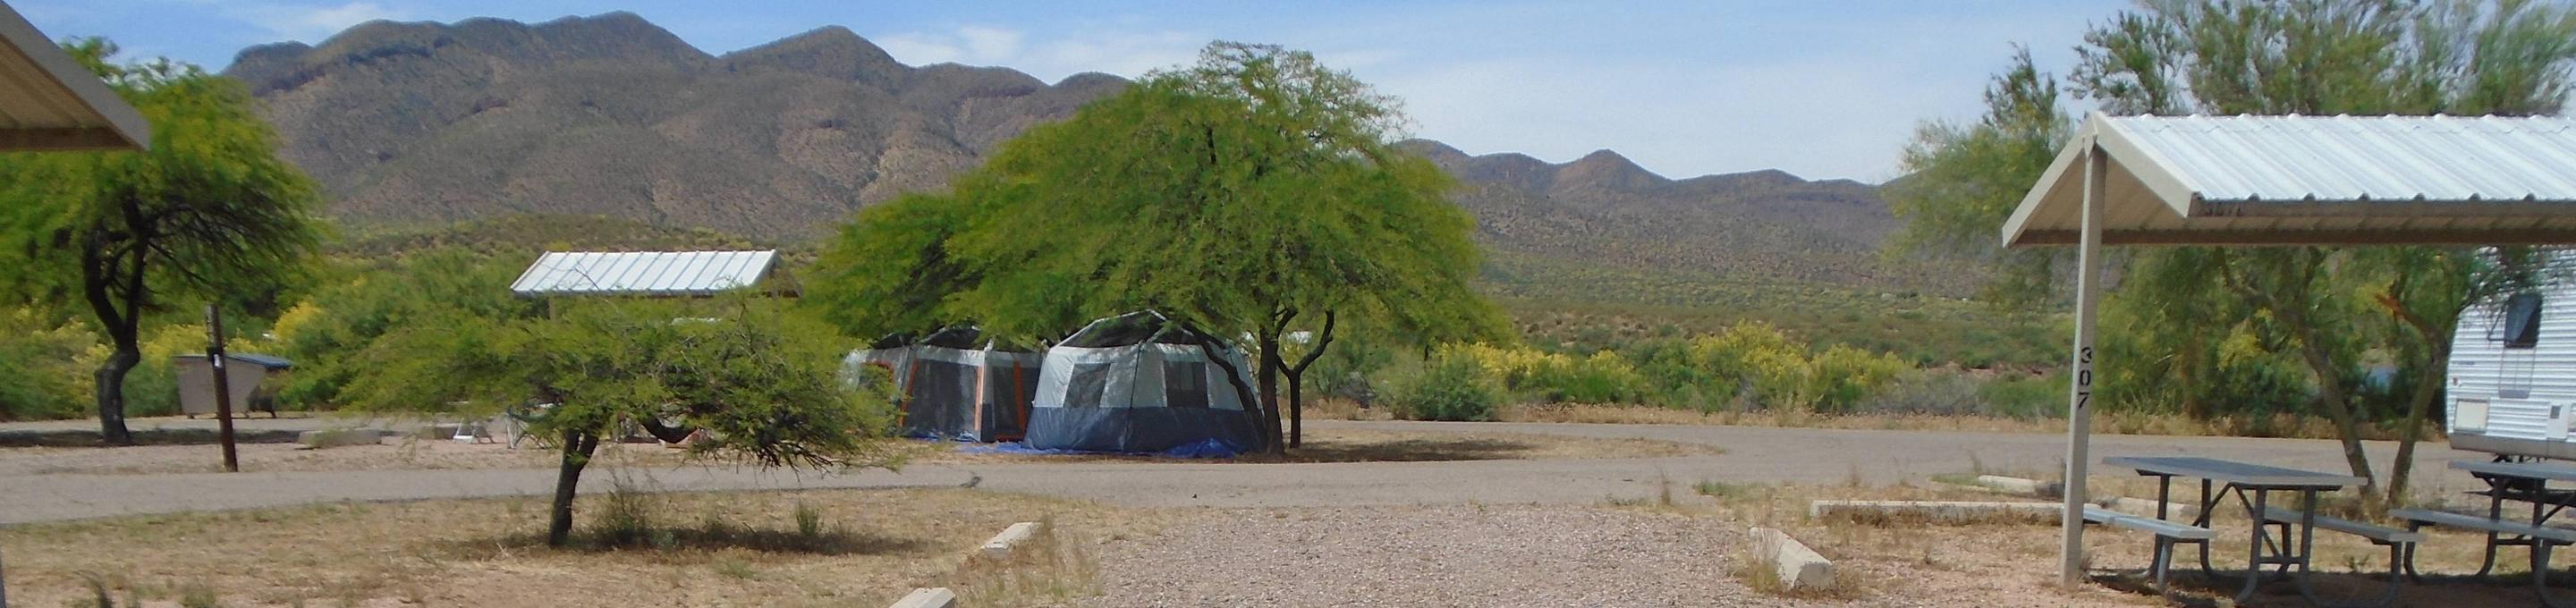 Campsite 307, Coyote LoopWindy Hill Campground